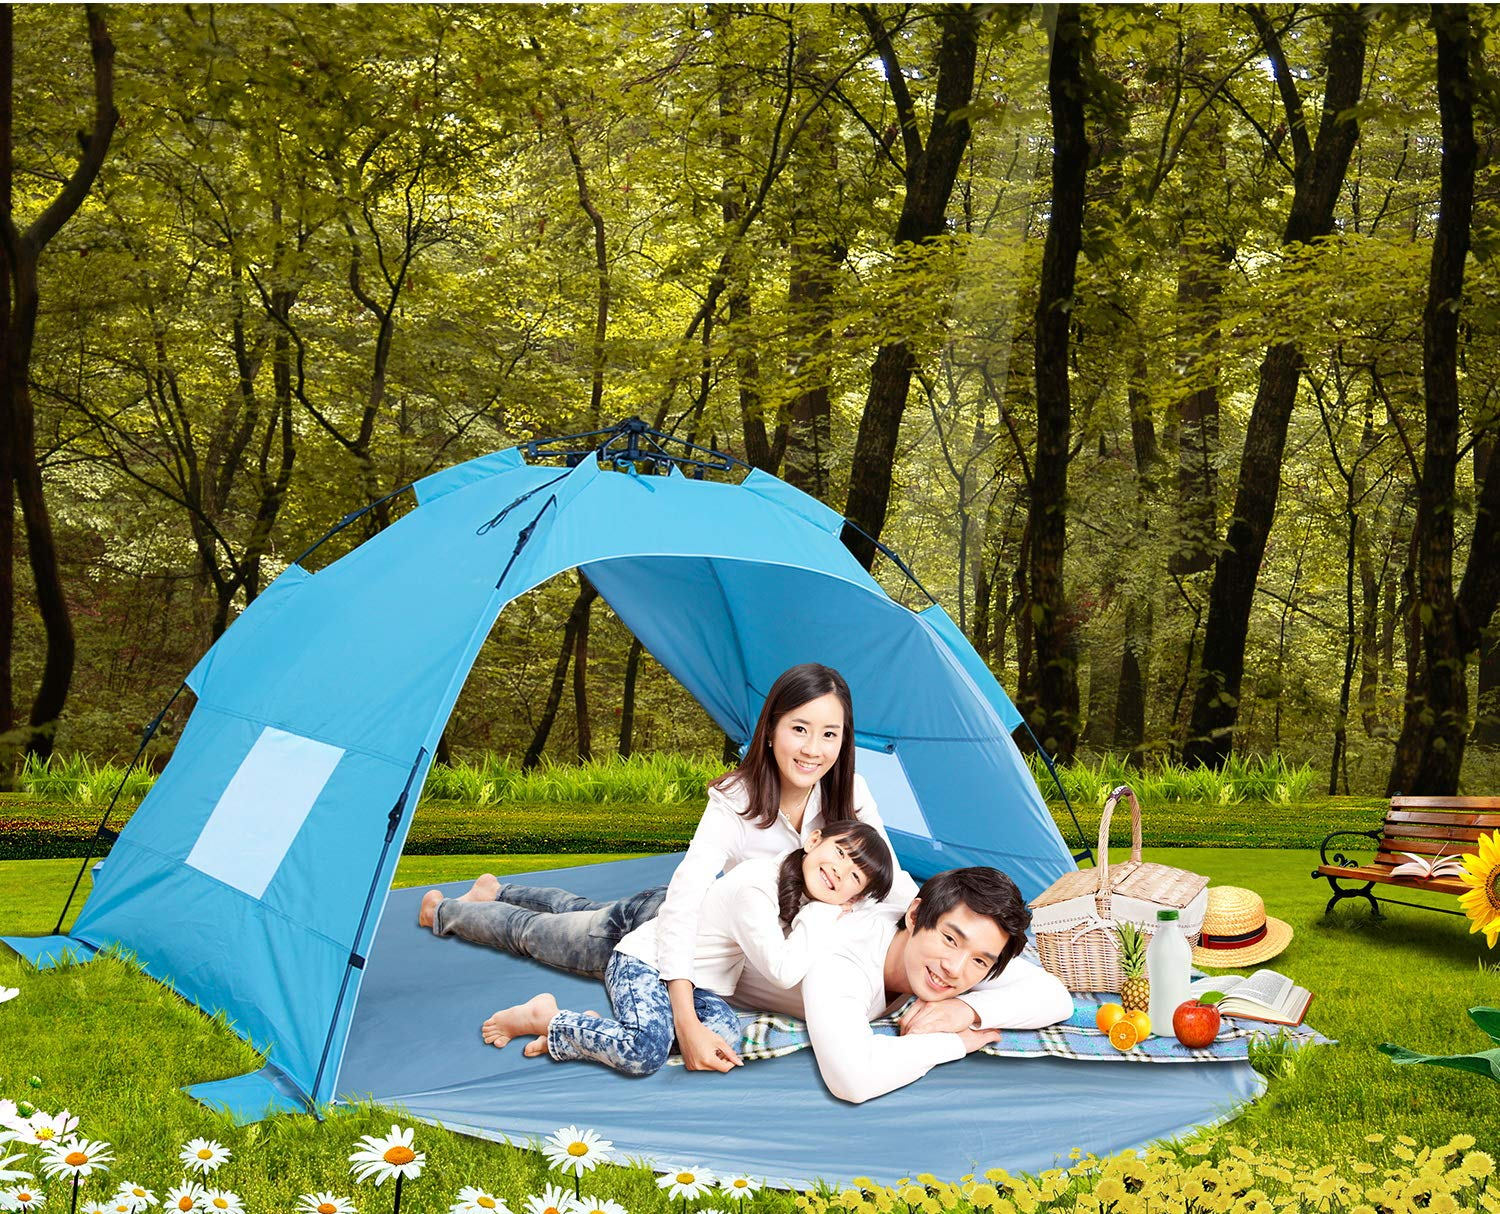 Sun-shelter Beach Tent 3 or 4 Person Automatic Camping Tent with UV Protection pop up Beach Shade for Outdoor Activities Easy Set up